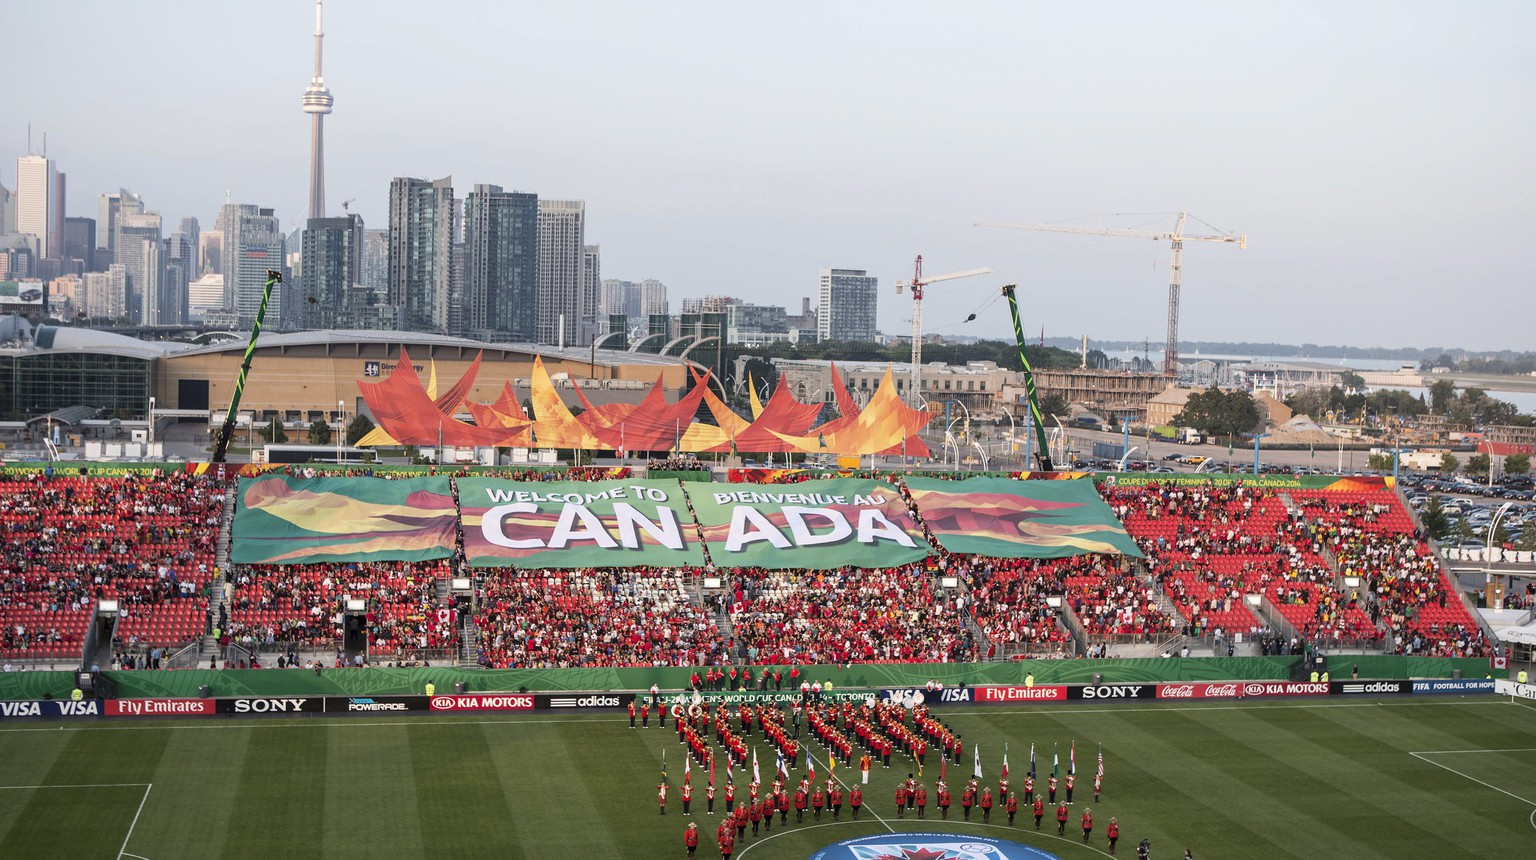 Fans take in the opening ceremony ahead of Canada's game against Ghana in the FIFA U-20 women's World Cup soccer tournament Tuesday, Aug. 5, 2014, in Toronto. (AP Photo/The Canadian Press, Chris Young)